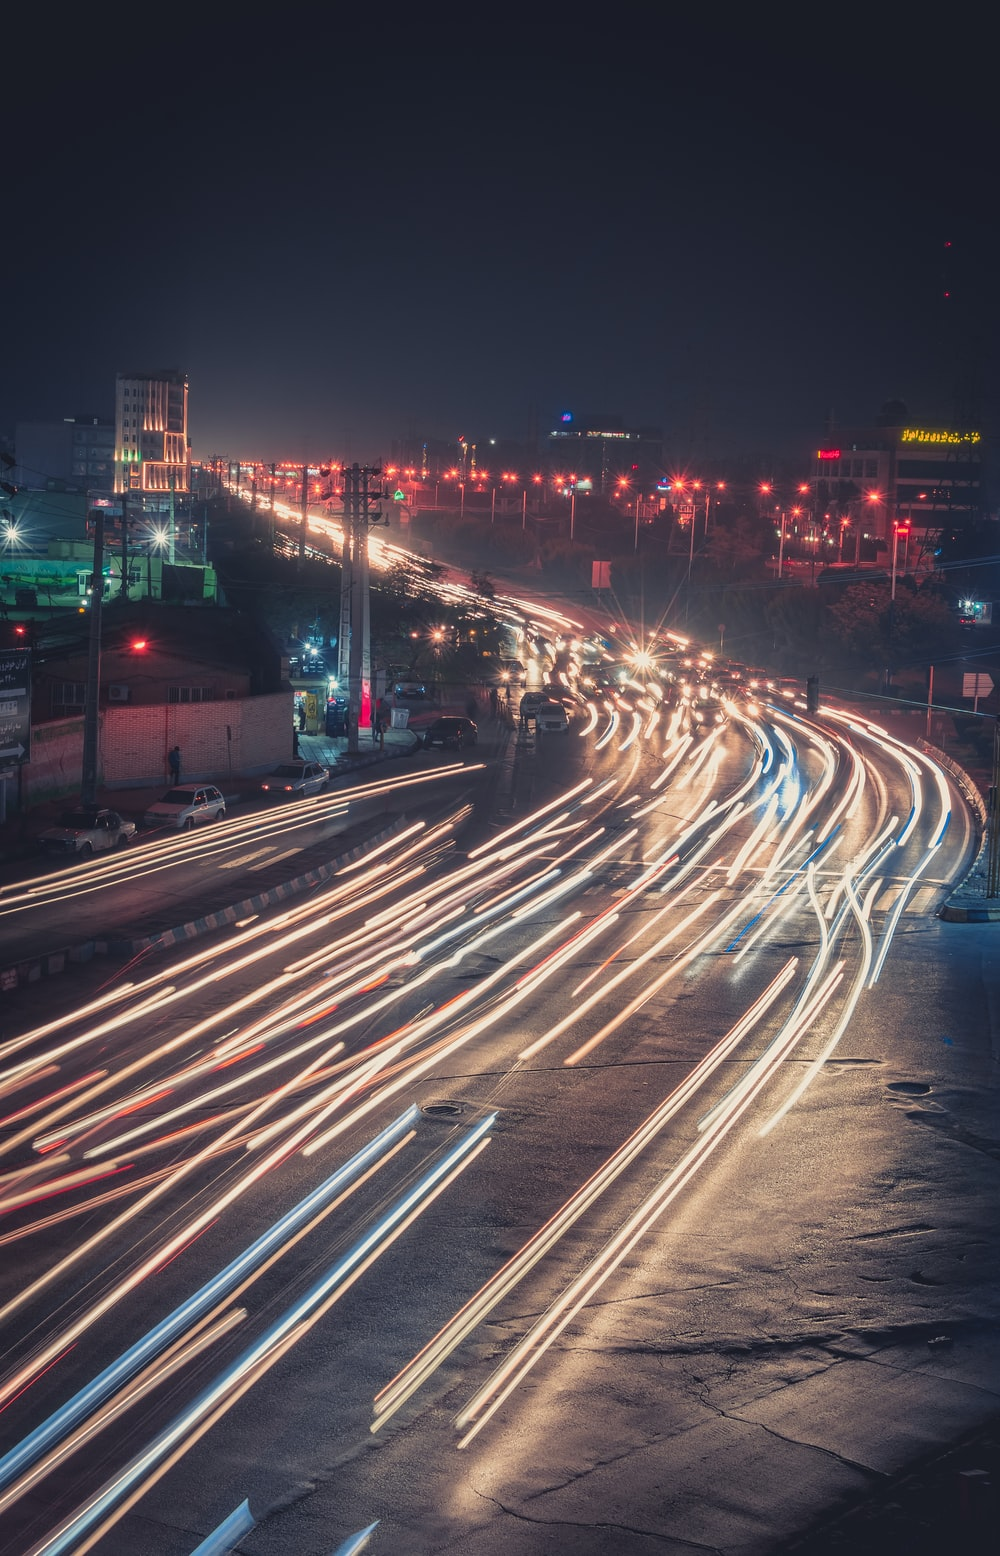 time lapse photography of vehicles passing during night time